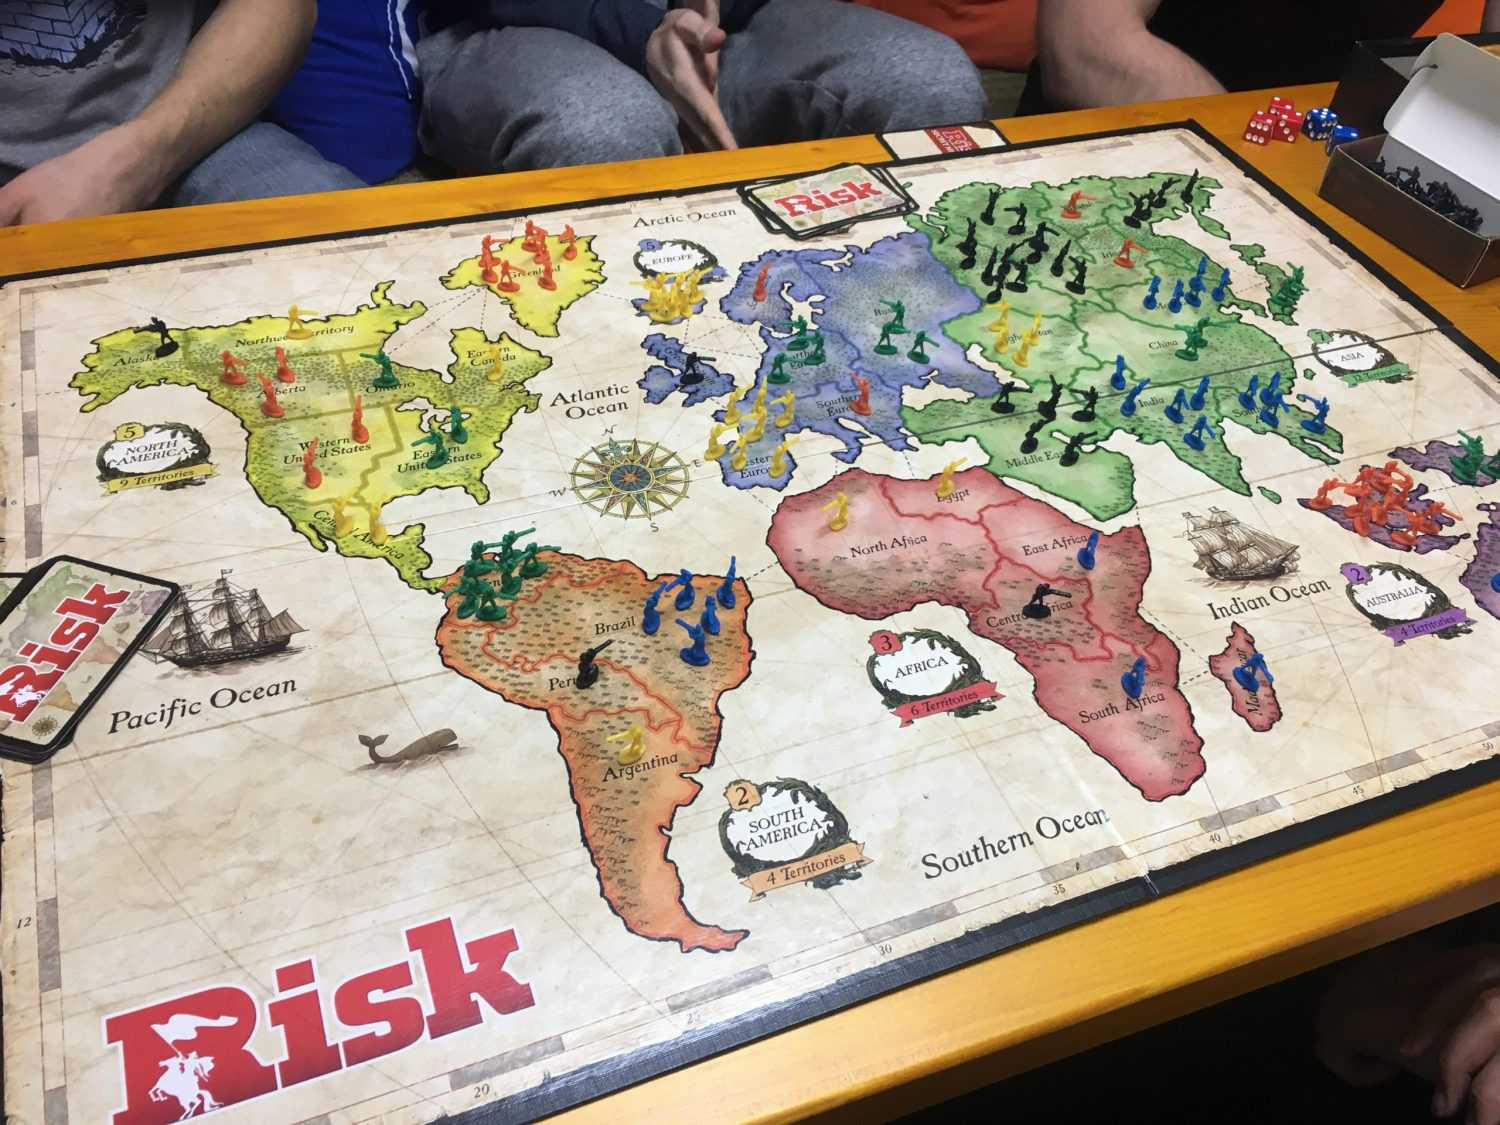 Risk at Coworking Bansko's game night